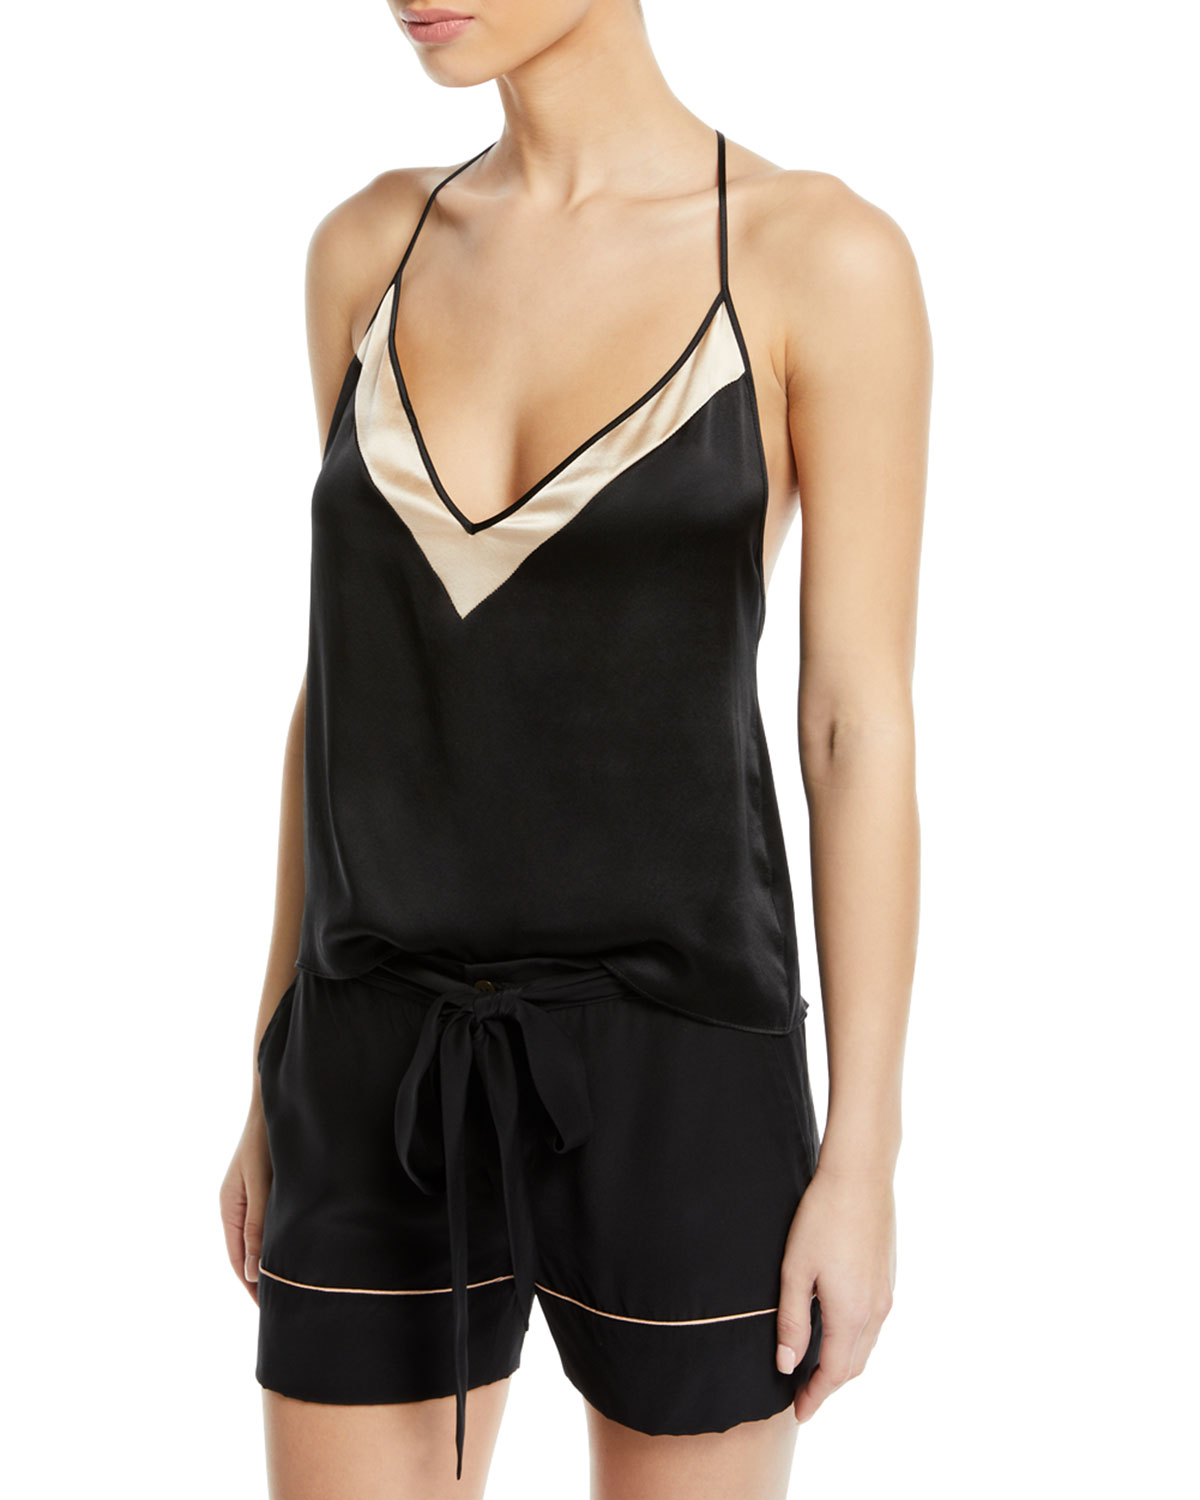 KIKI DE MONTPARNASSE Amour T-Back Silk Camisole in Black And Nude